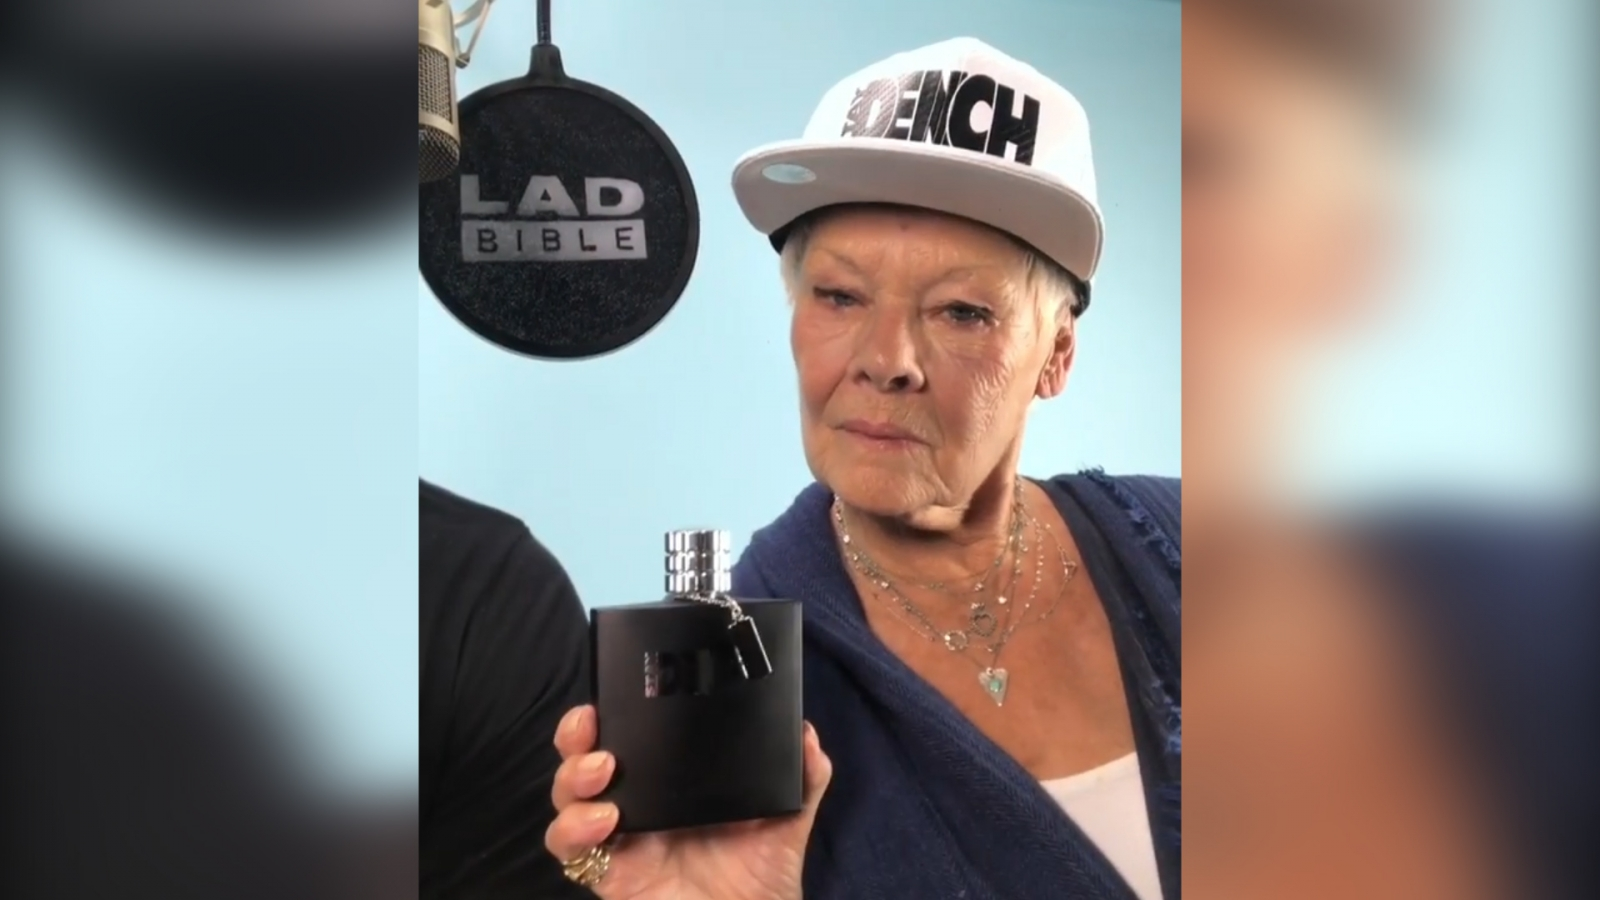 Lethal Bizzle and Judy Dench team up in Instagram video